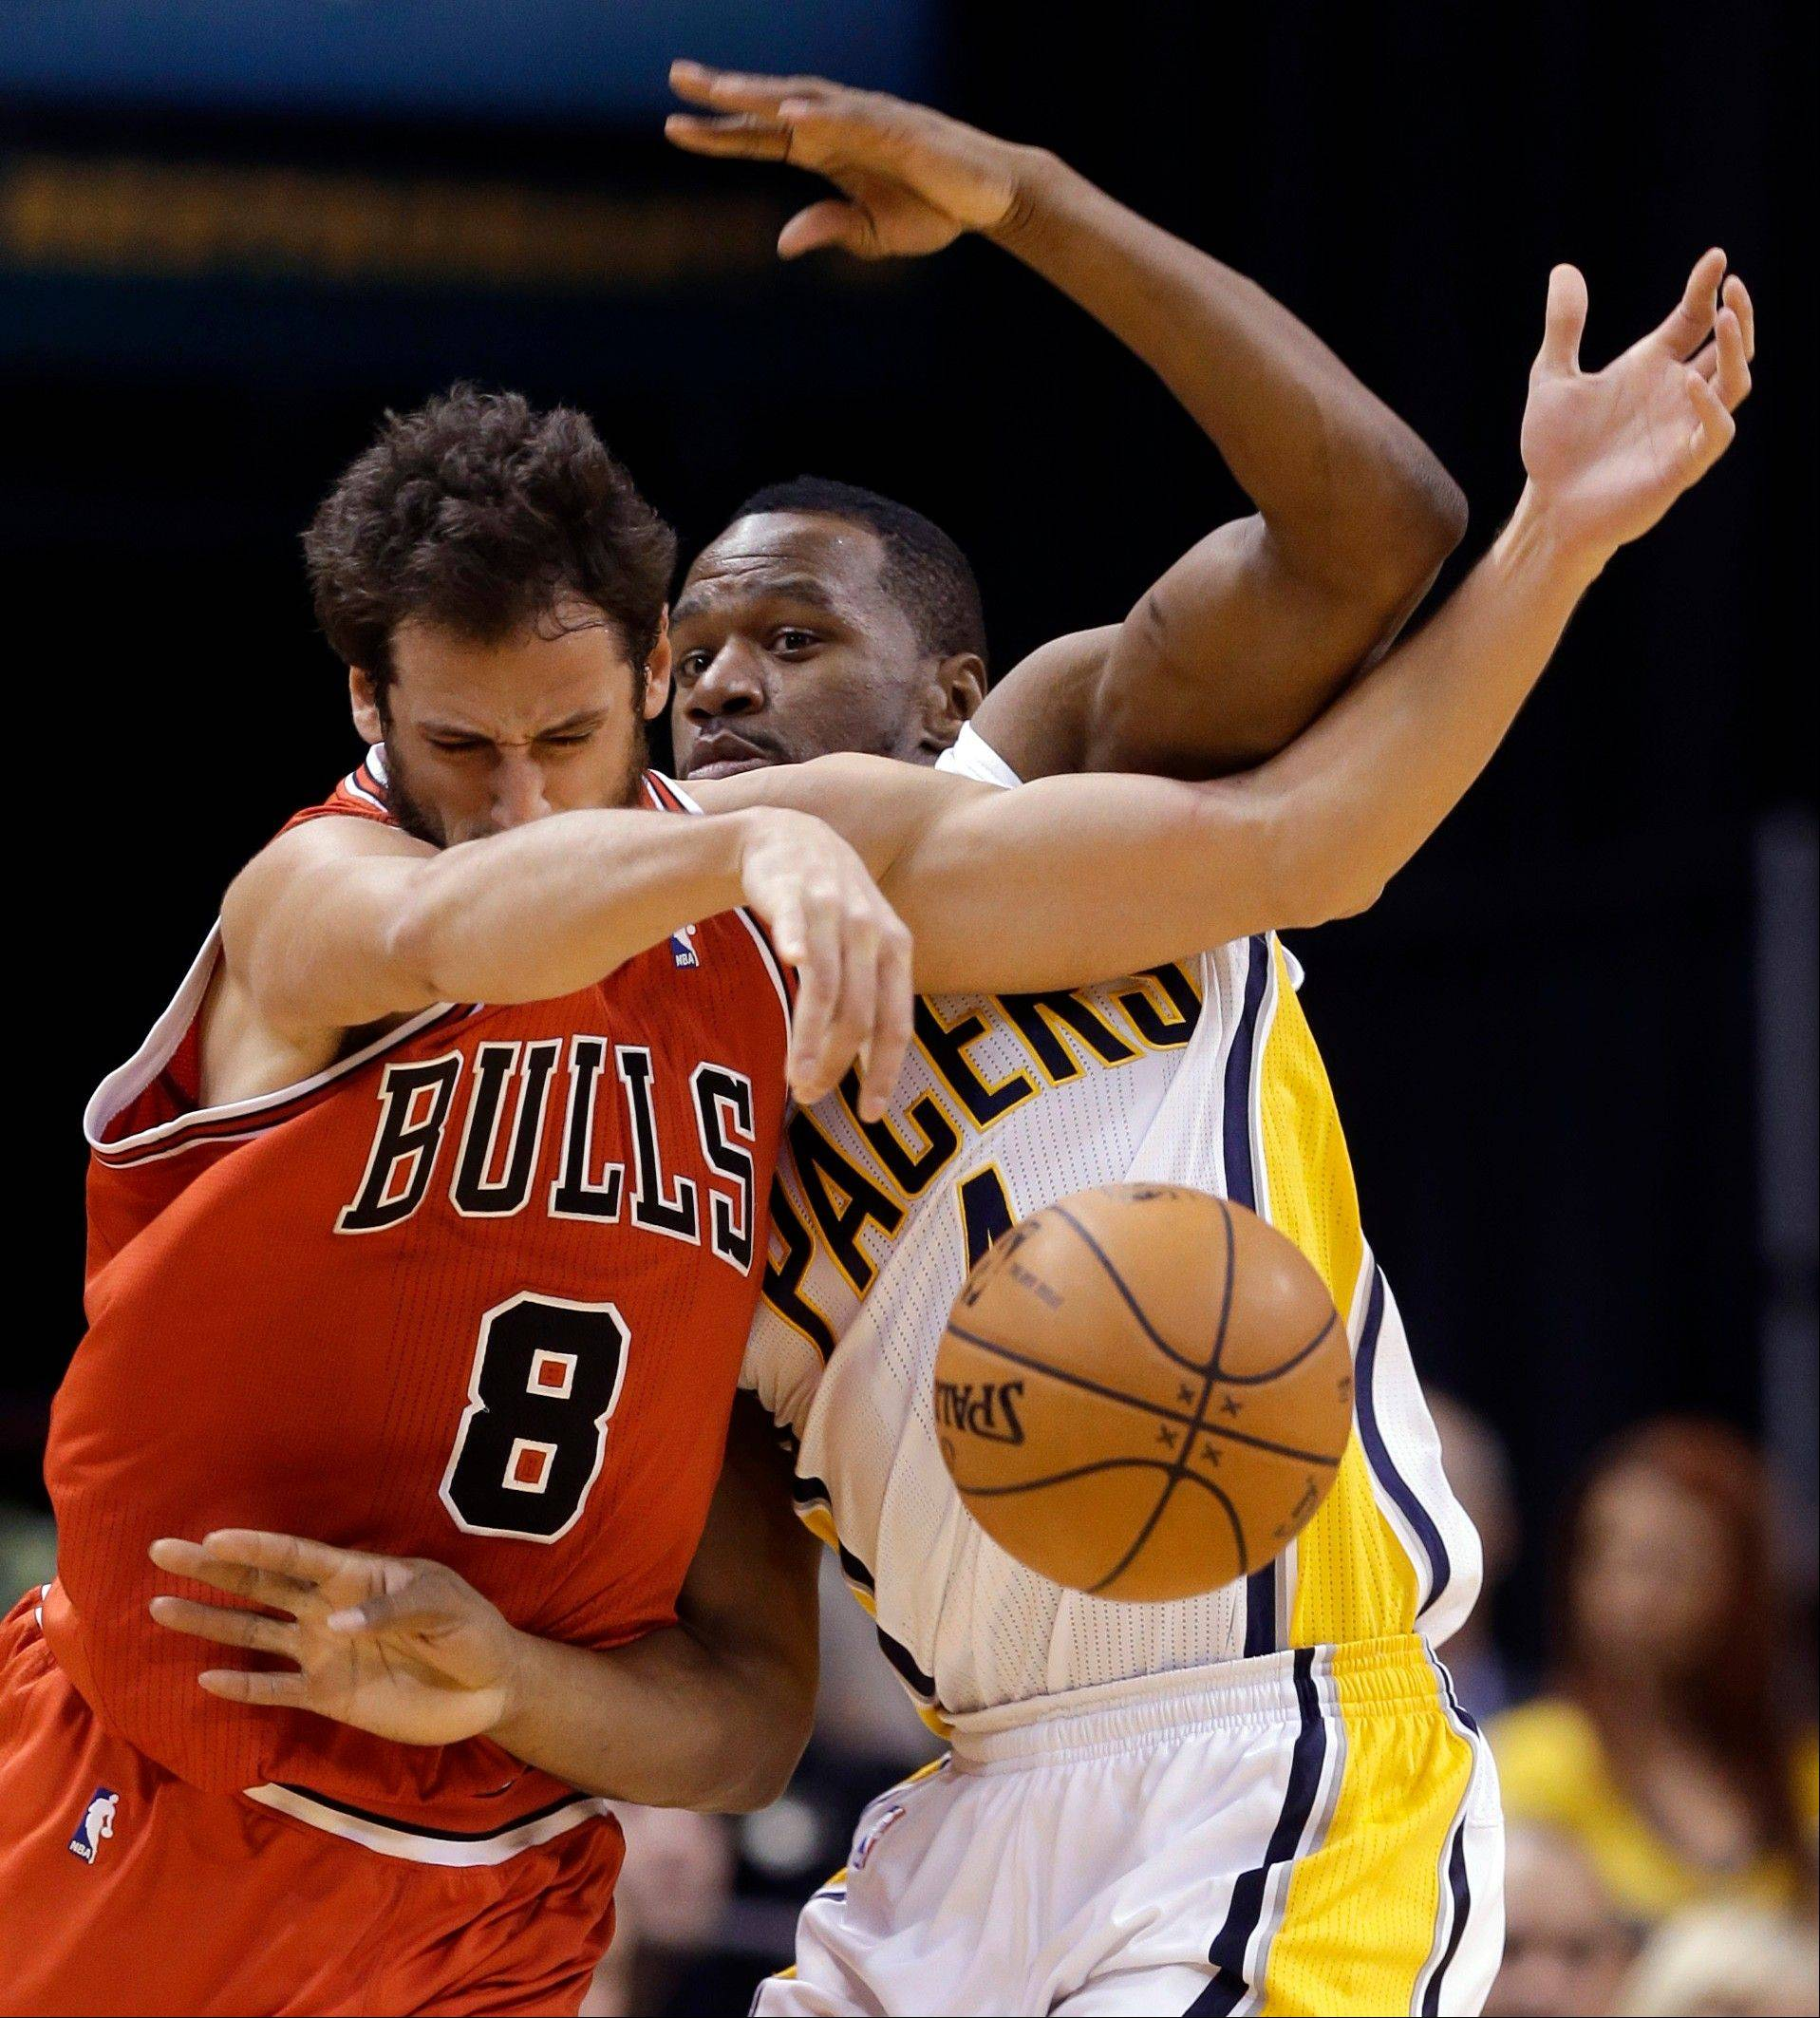 Bulls guard Marco Belinelli, left, and Pacers forward Sam Young get tangled up in the second half of Monday�s game in Indianapolis.